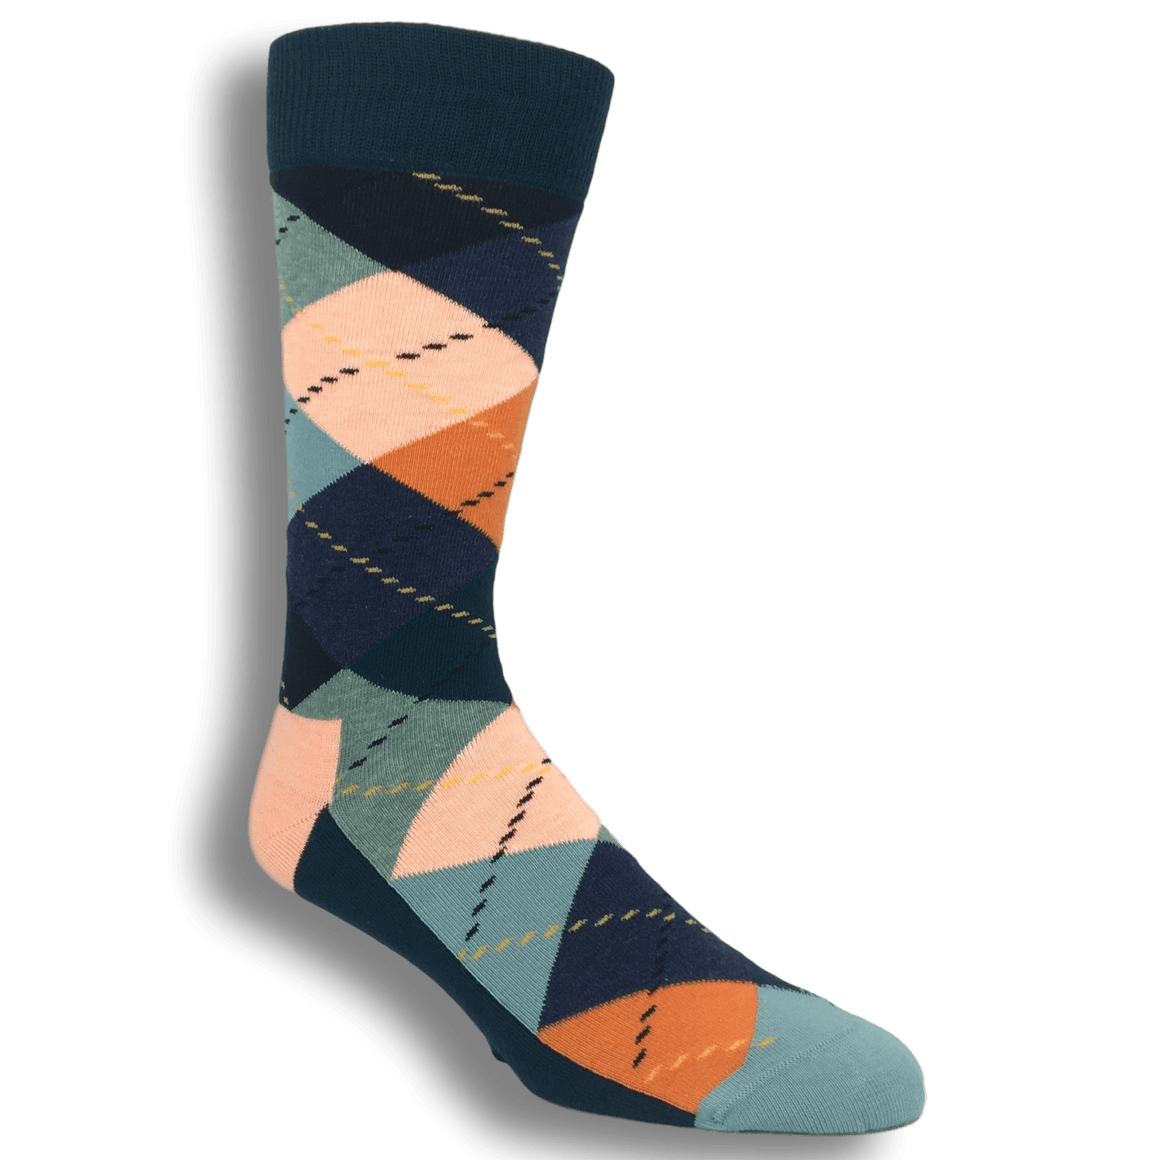 Orange, Blue, and Grey Argyle Socks by Happy Socks - The Sock Spot